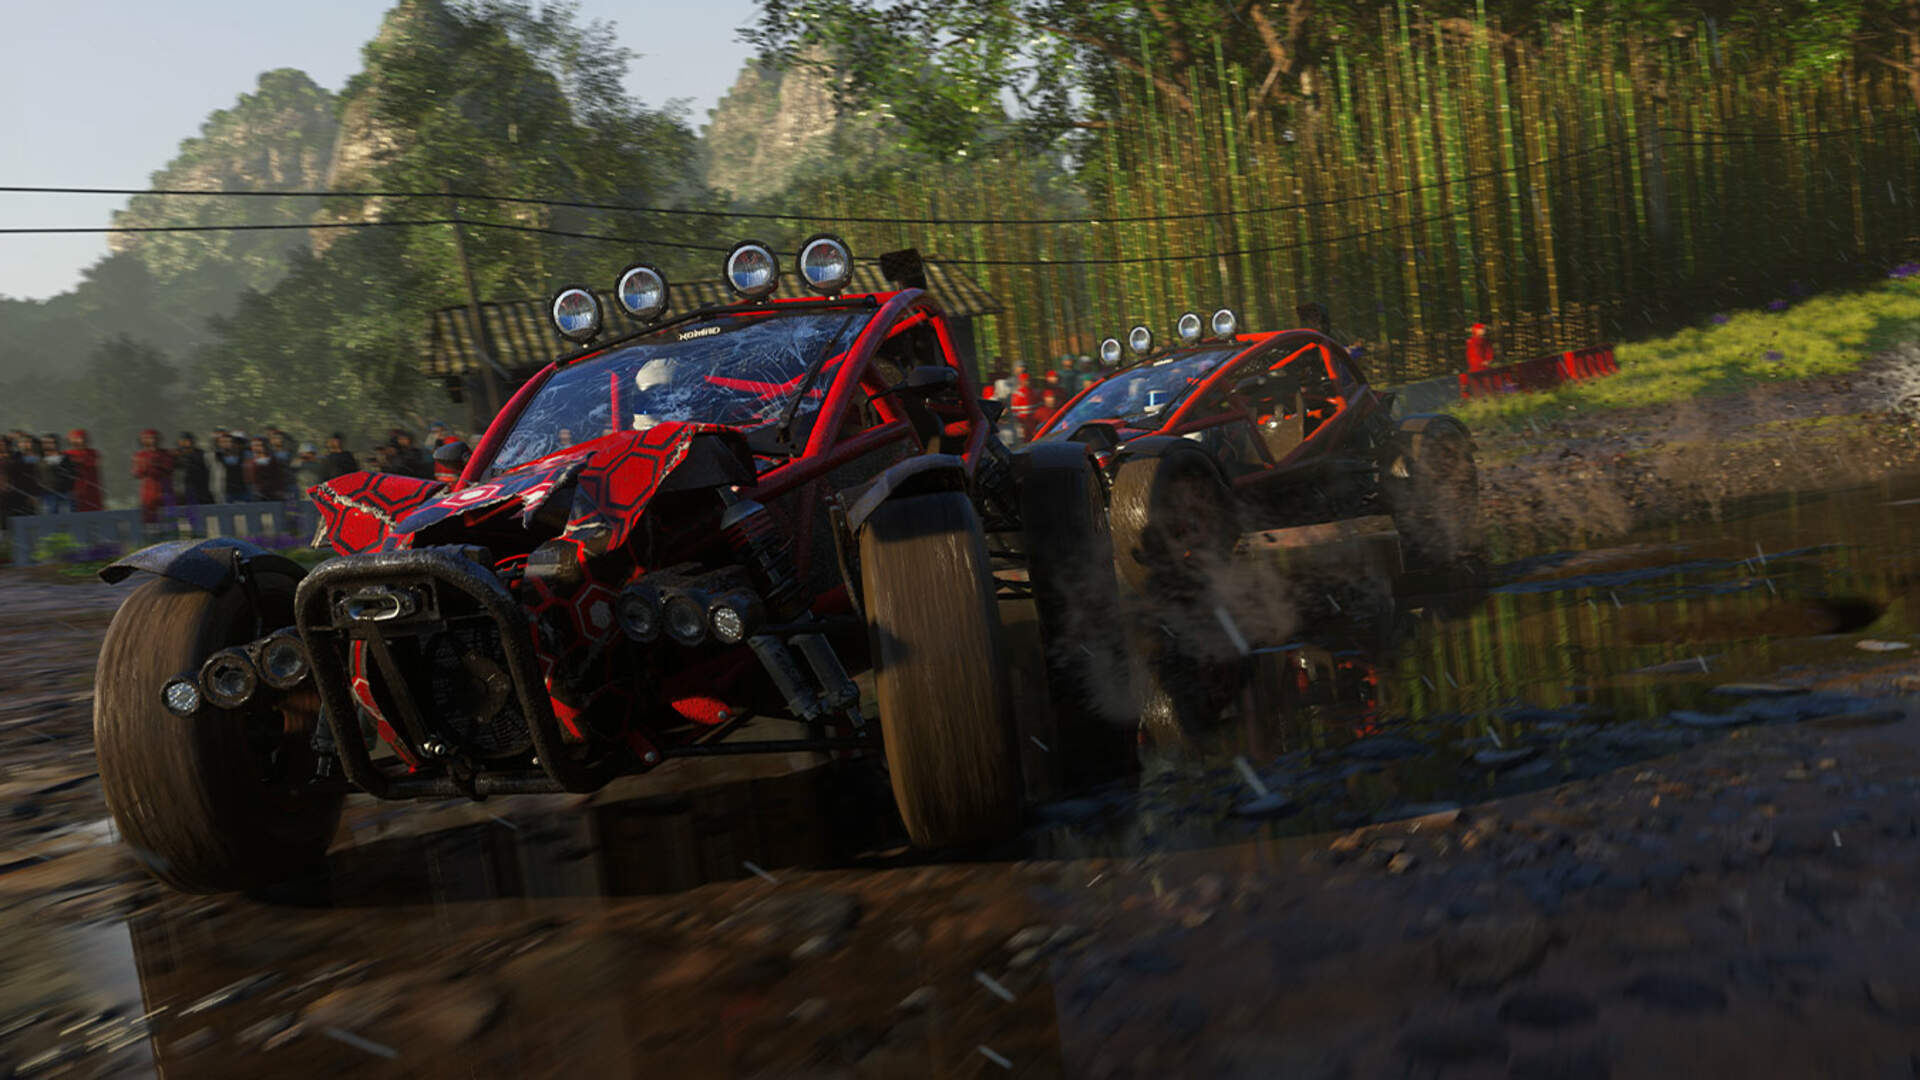 EA Agrees to $1.2 Billion Deal for Codemasters, Take-Two Now Reconsidering Its Lower Bid